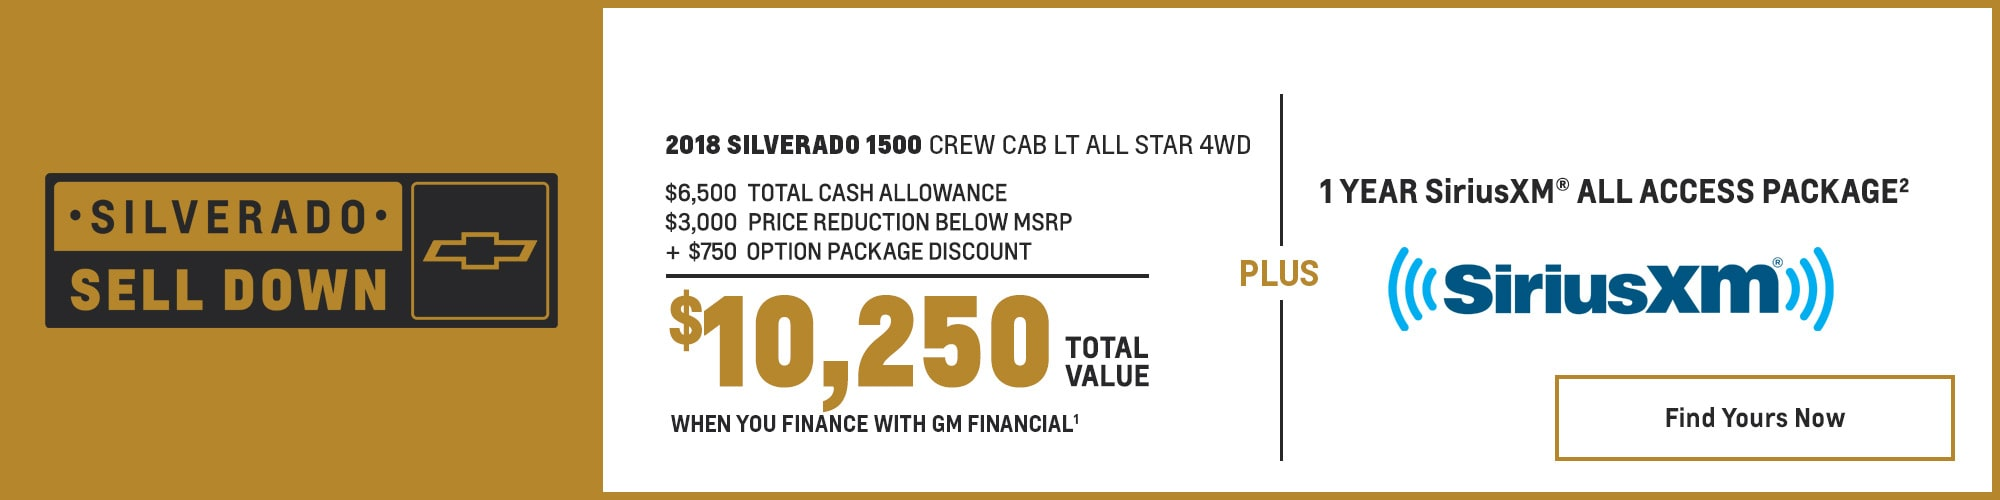 2018 Silverado 1500 Pickup Truck Deals and Offers